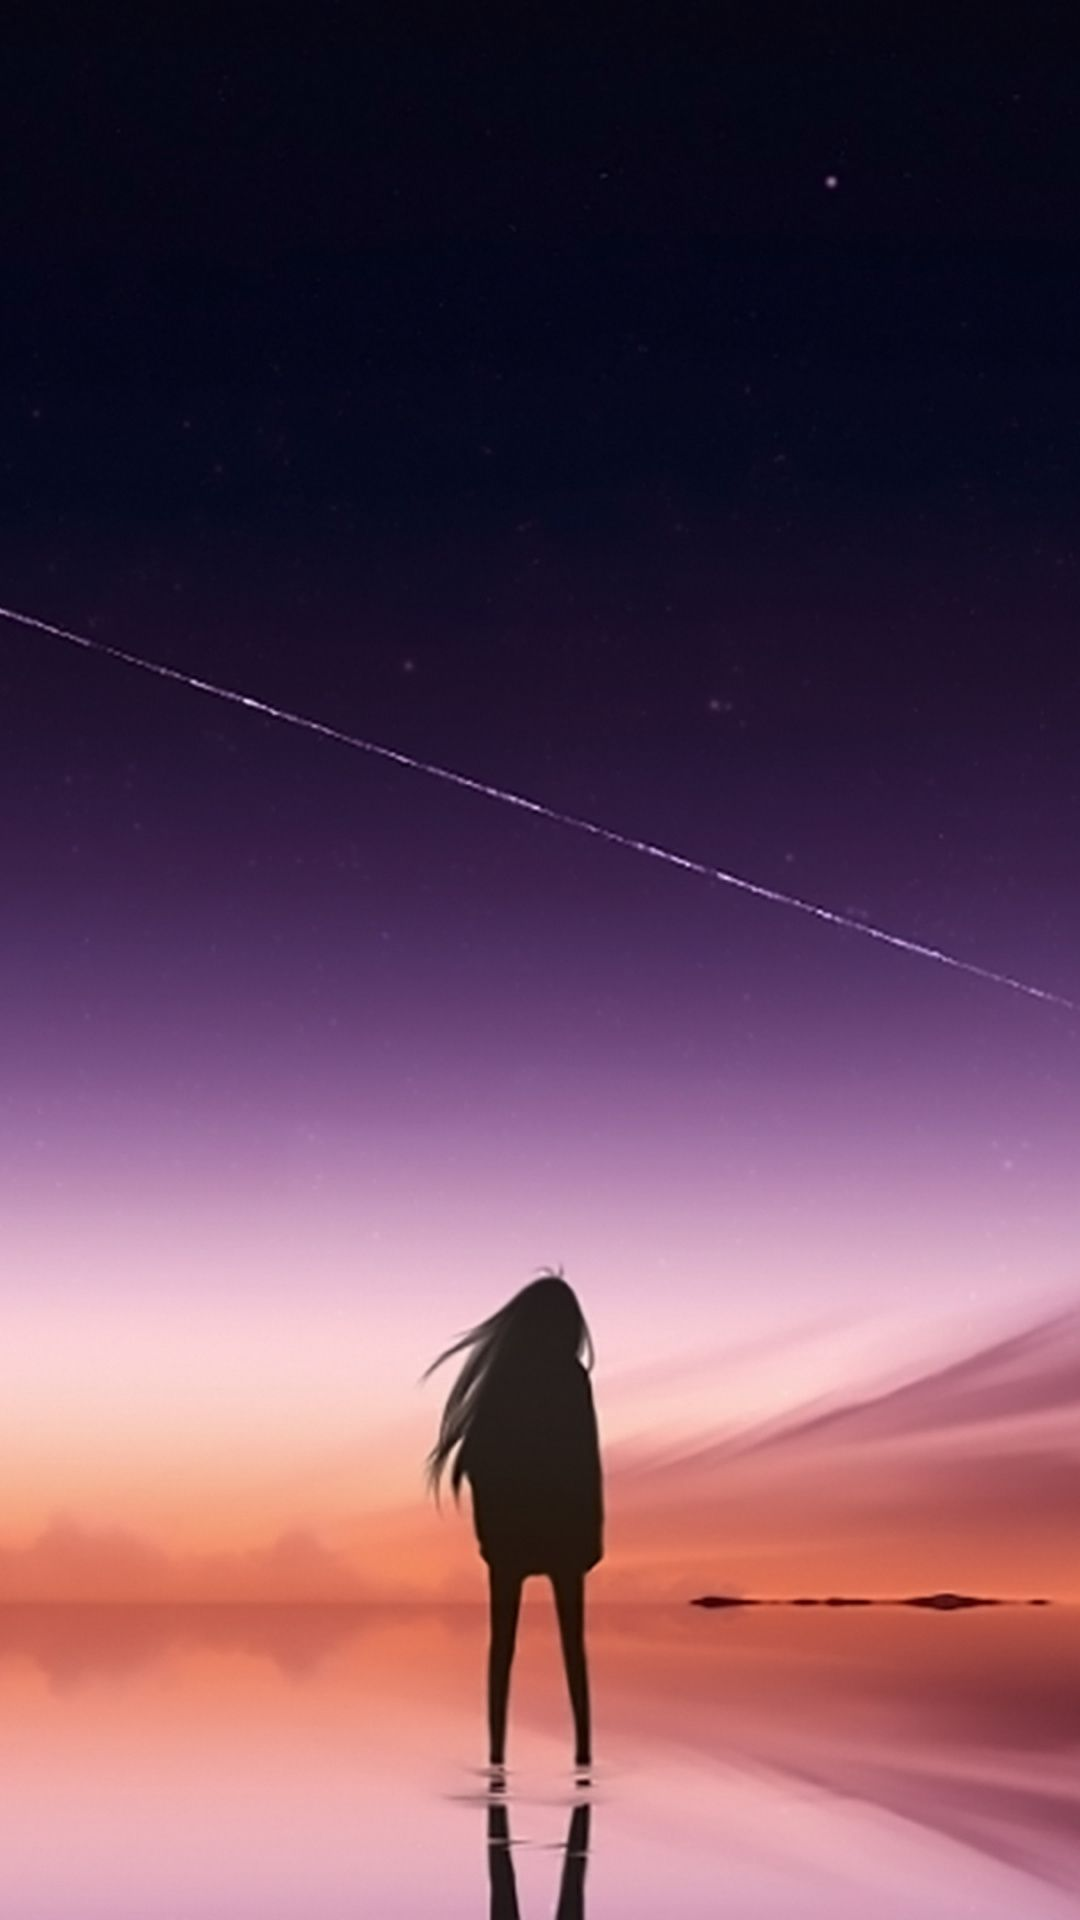 Sad Anime Iphone Wallpapers 43 Images Wallpaperboat